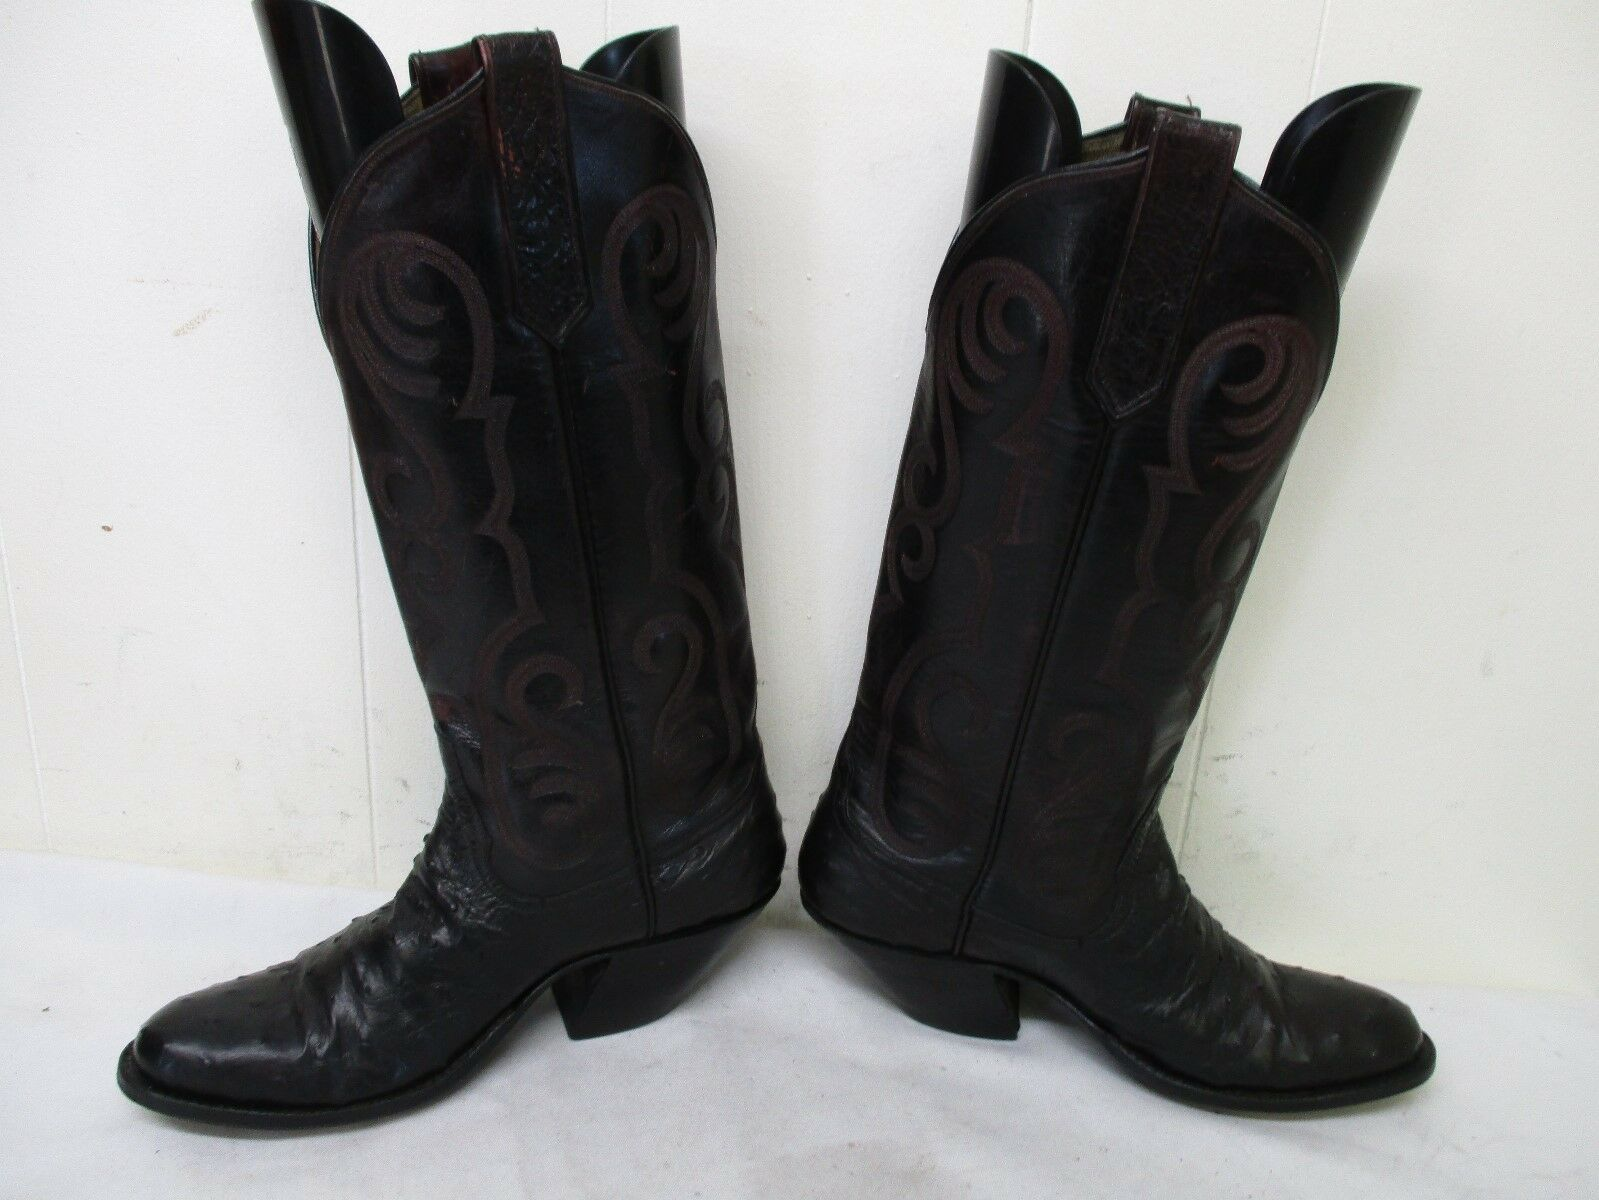 RIOS RIOS RIOS OF MERCEDES Oxblood Full Quill Ostrich Leather Cowboy Boots Womens Size 5 B bbb1ec